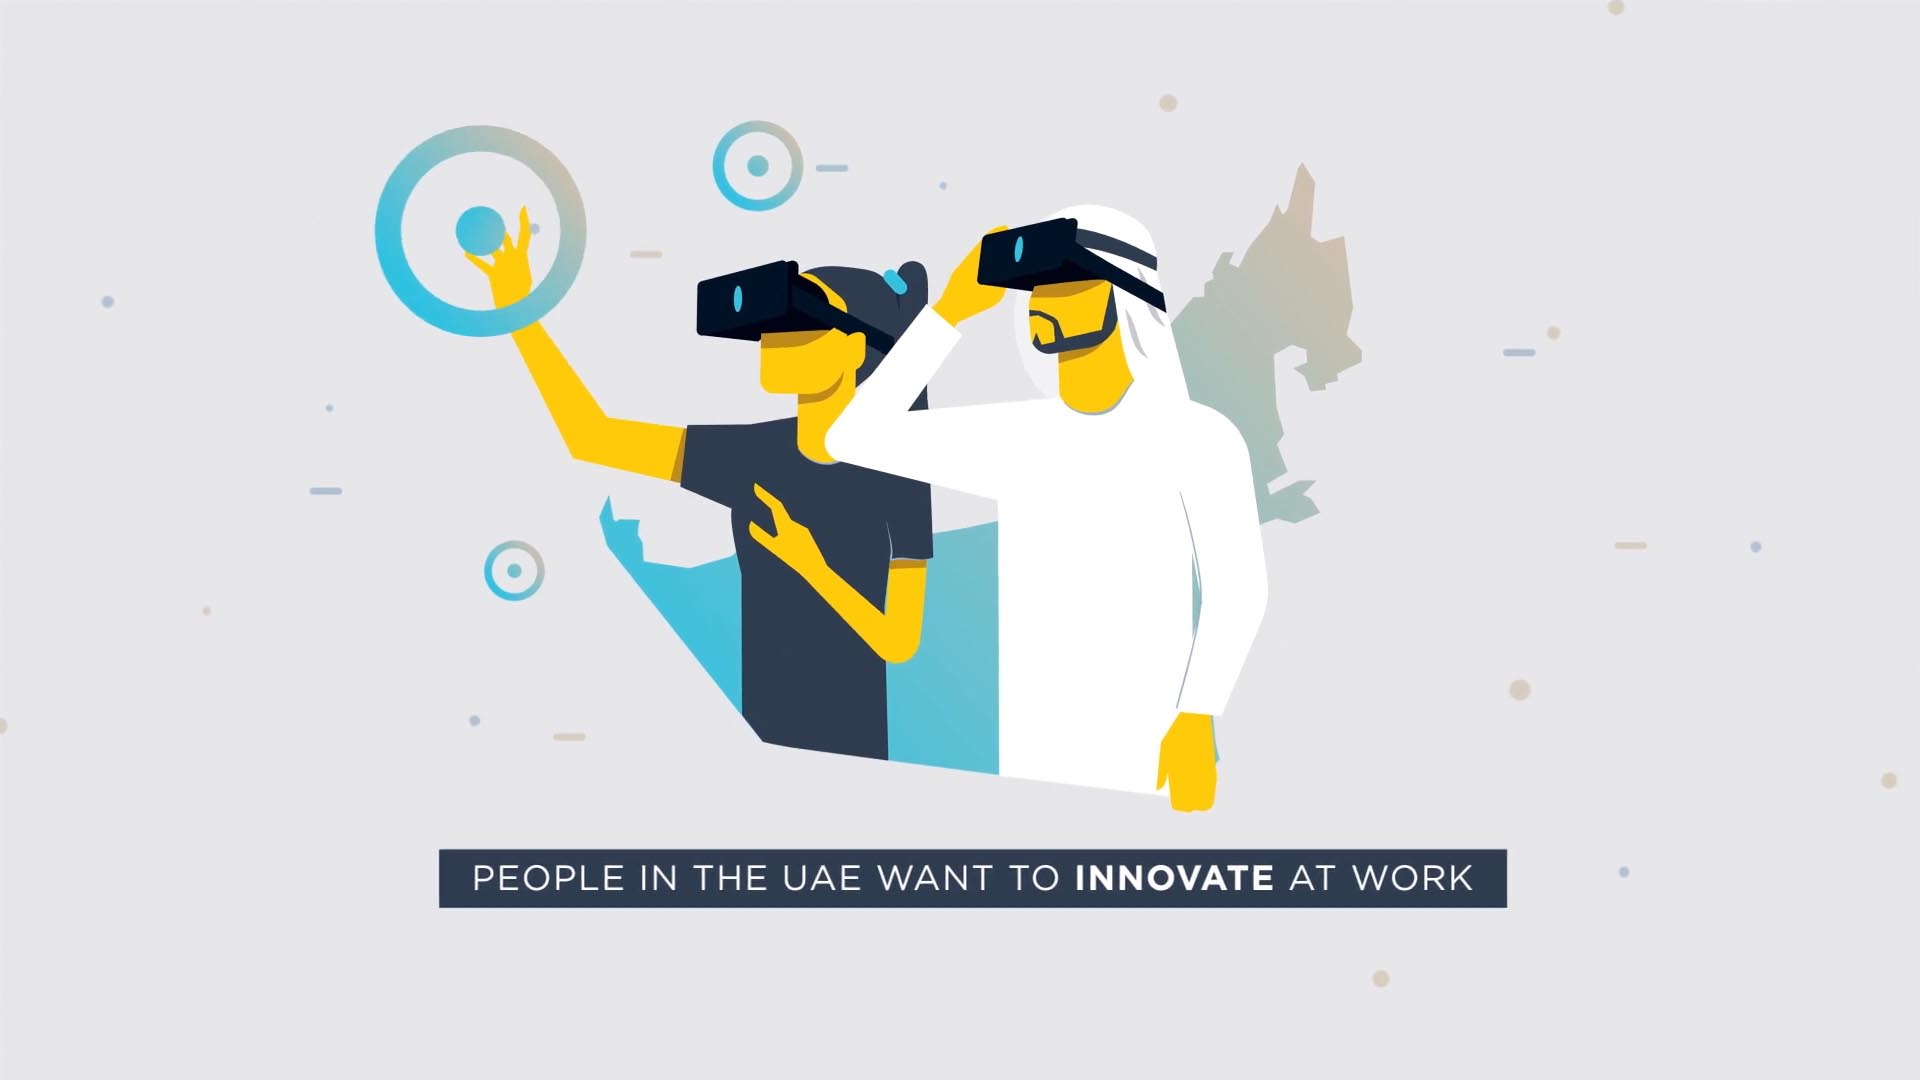 2D animated explainer video used for company internal communication by animation studio based in Dubai and the UK